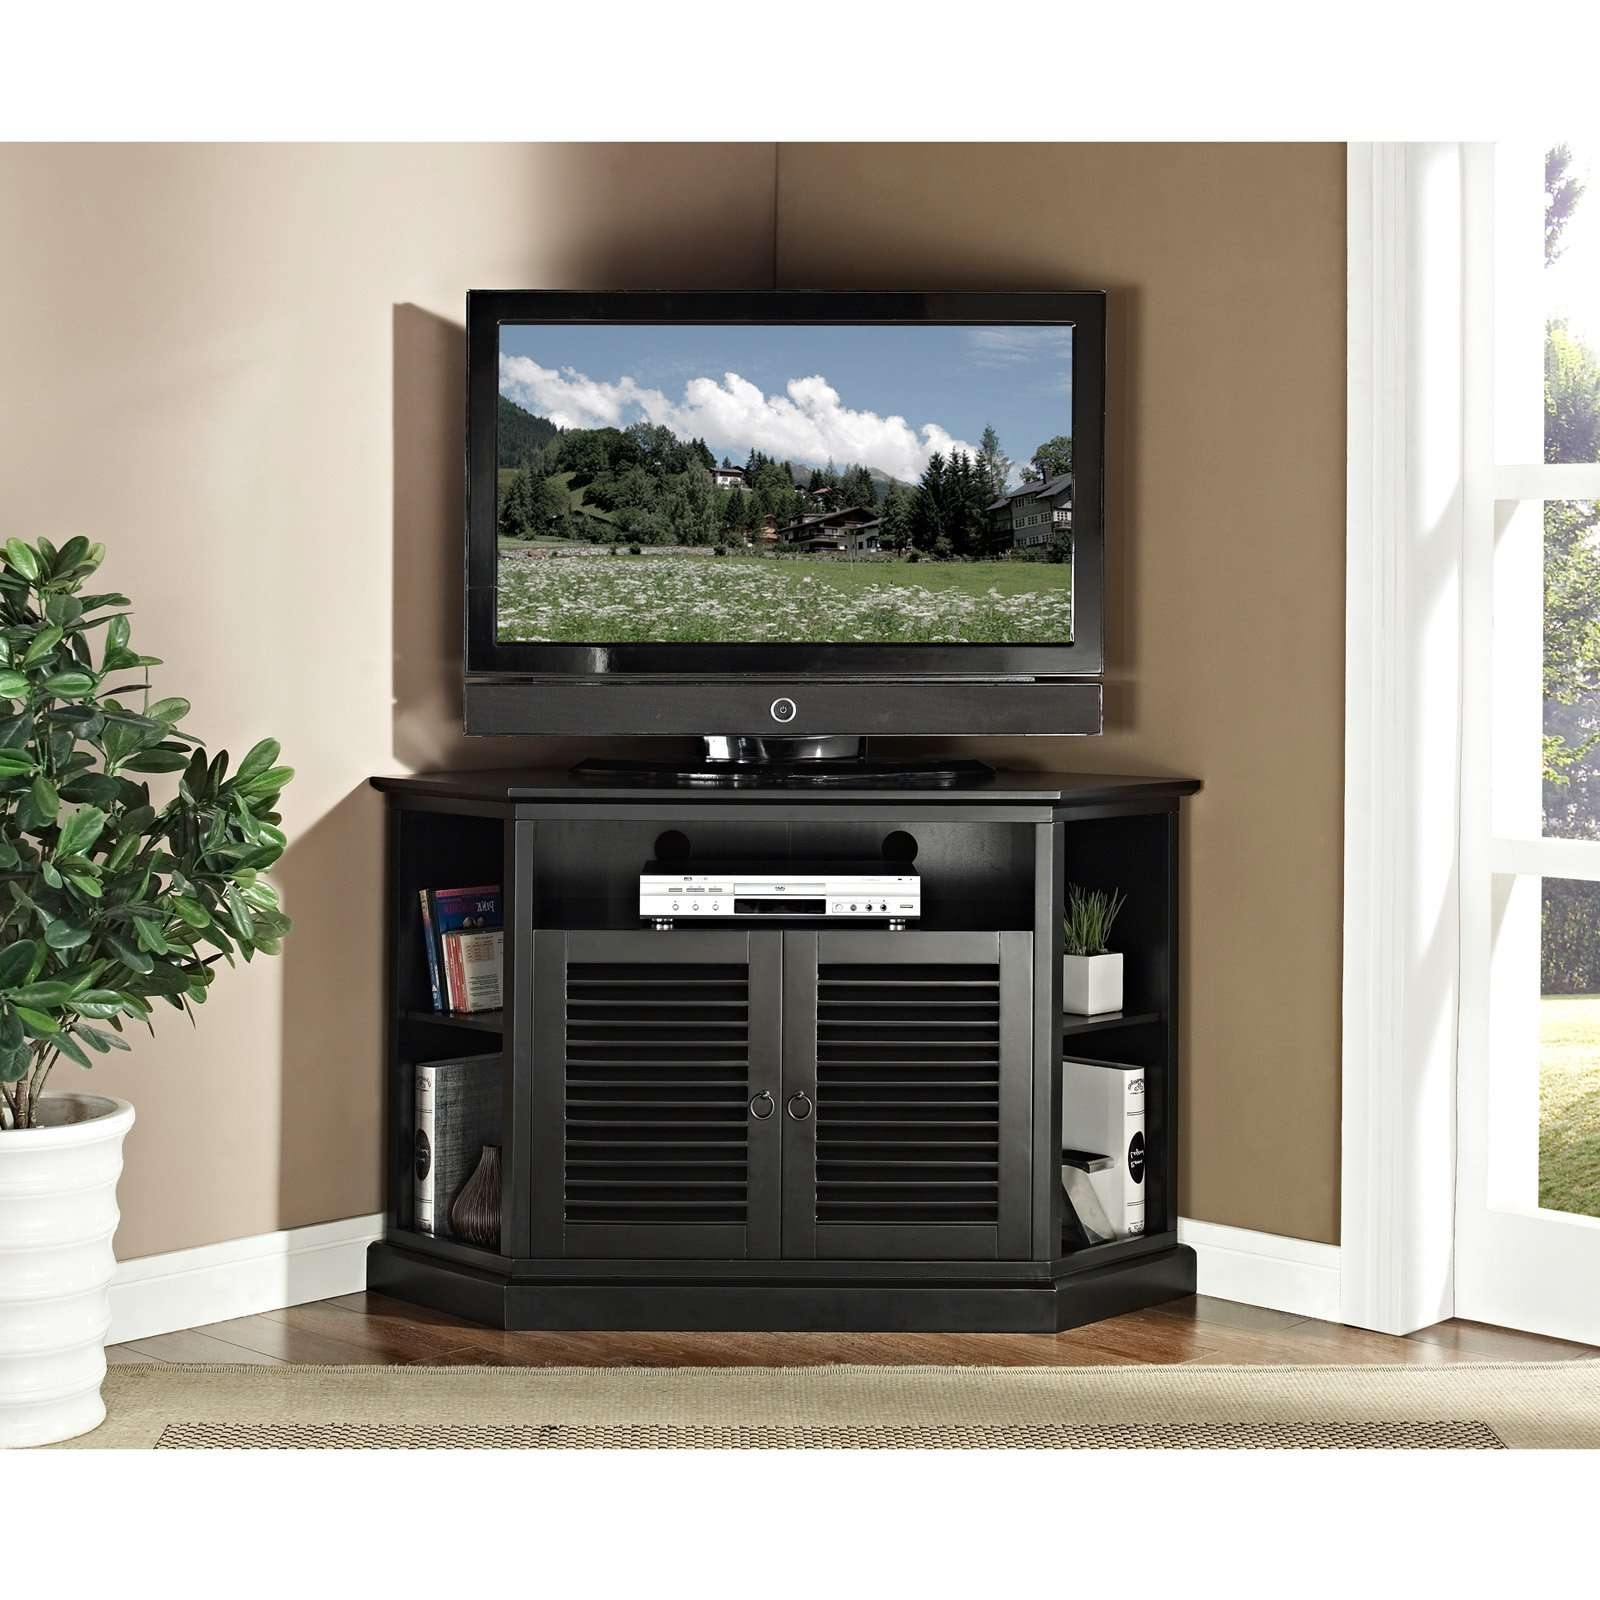 Black Tv Stand Cabinet With Wooden Doors And Corner Shelf For With Black Corner Tv Cabinets With Glass Doors (View 12 of 20)